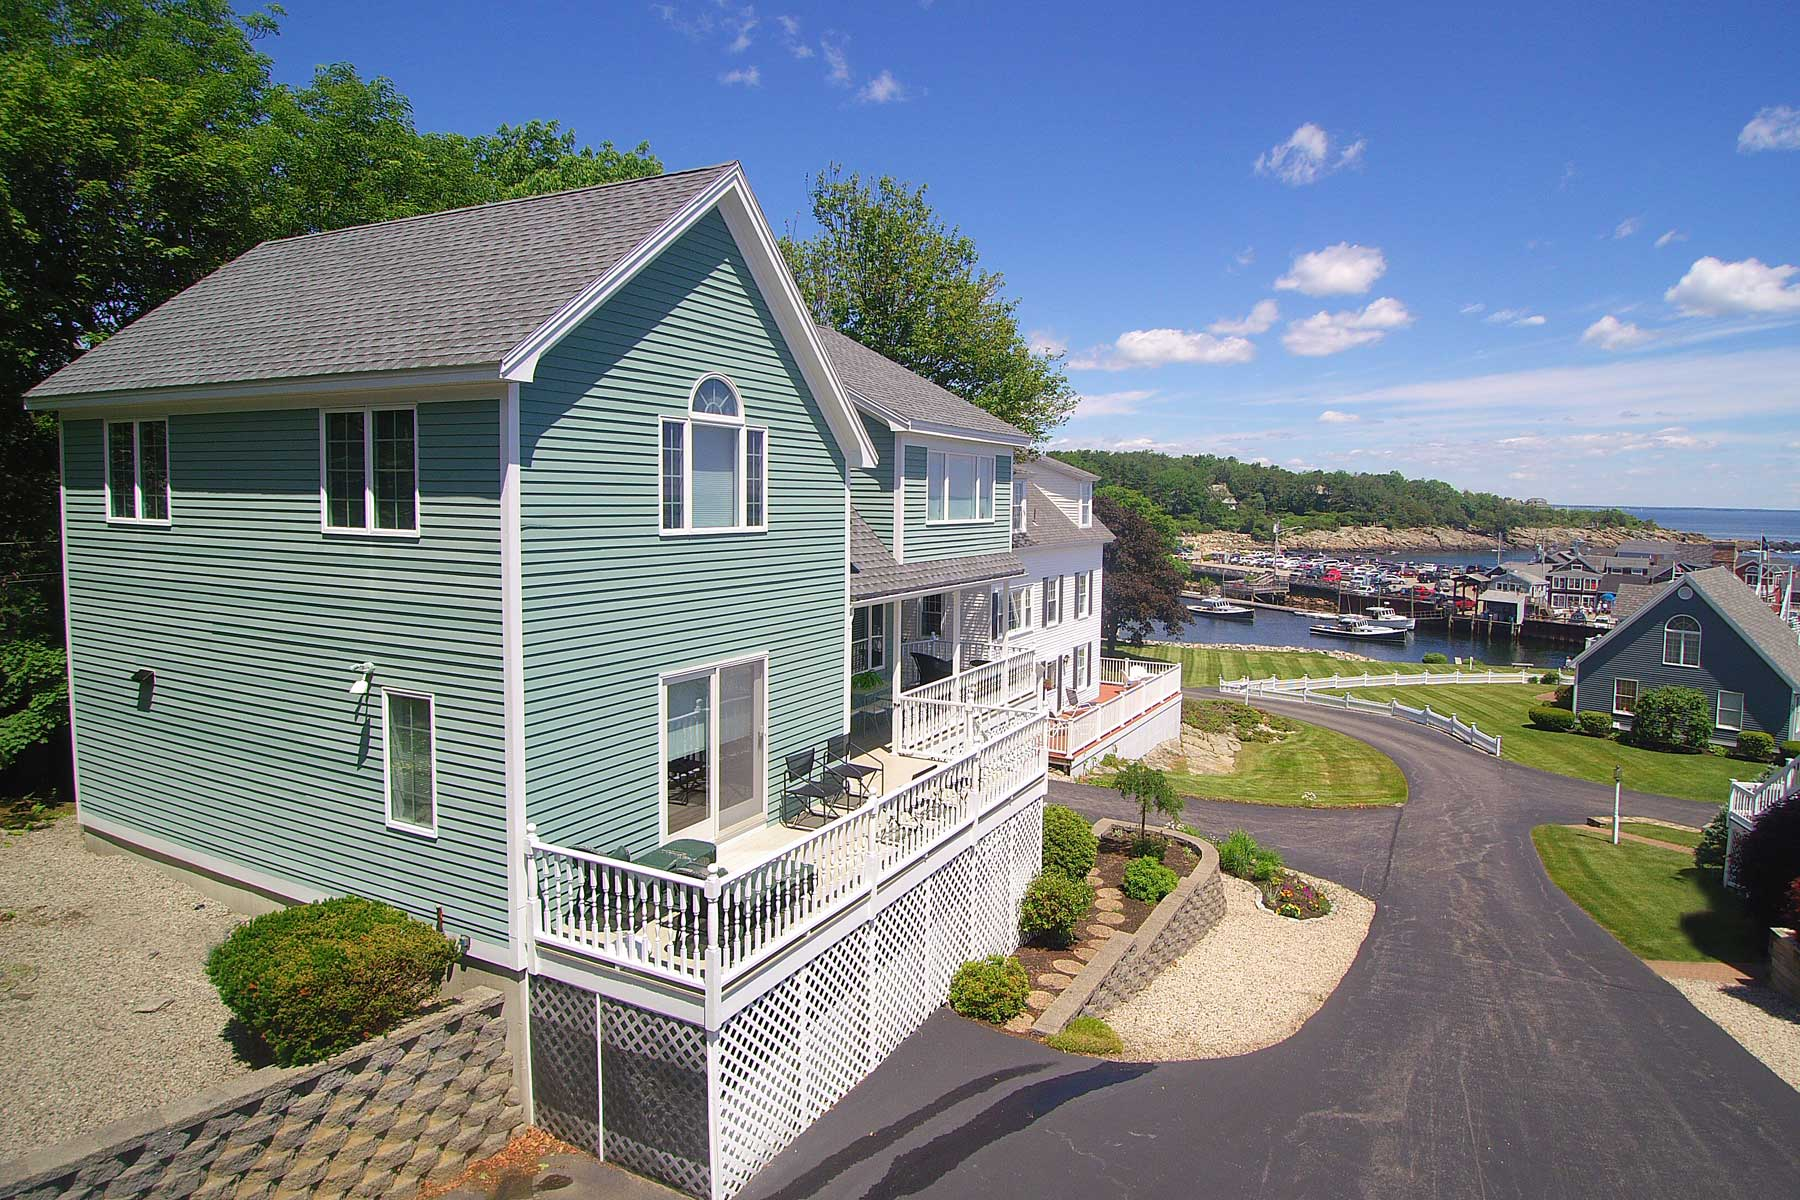 Single Family Home for Sale at Walk to Perkins Cove 47 Riverside Lane Ogunquit, Maine, 03907 United States